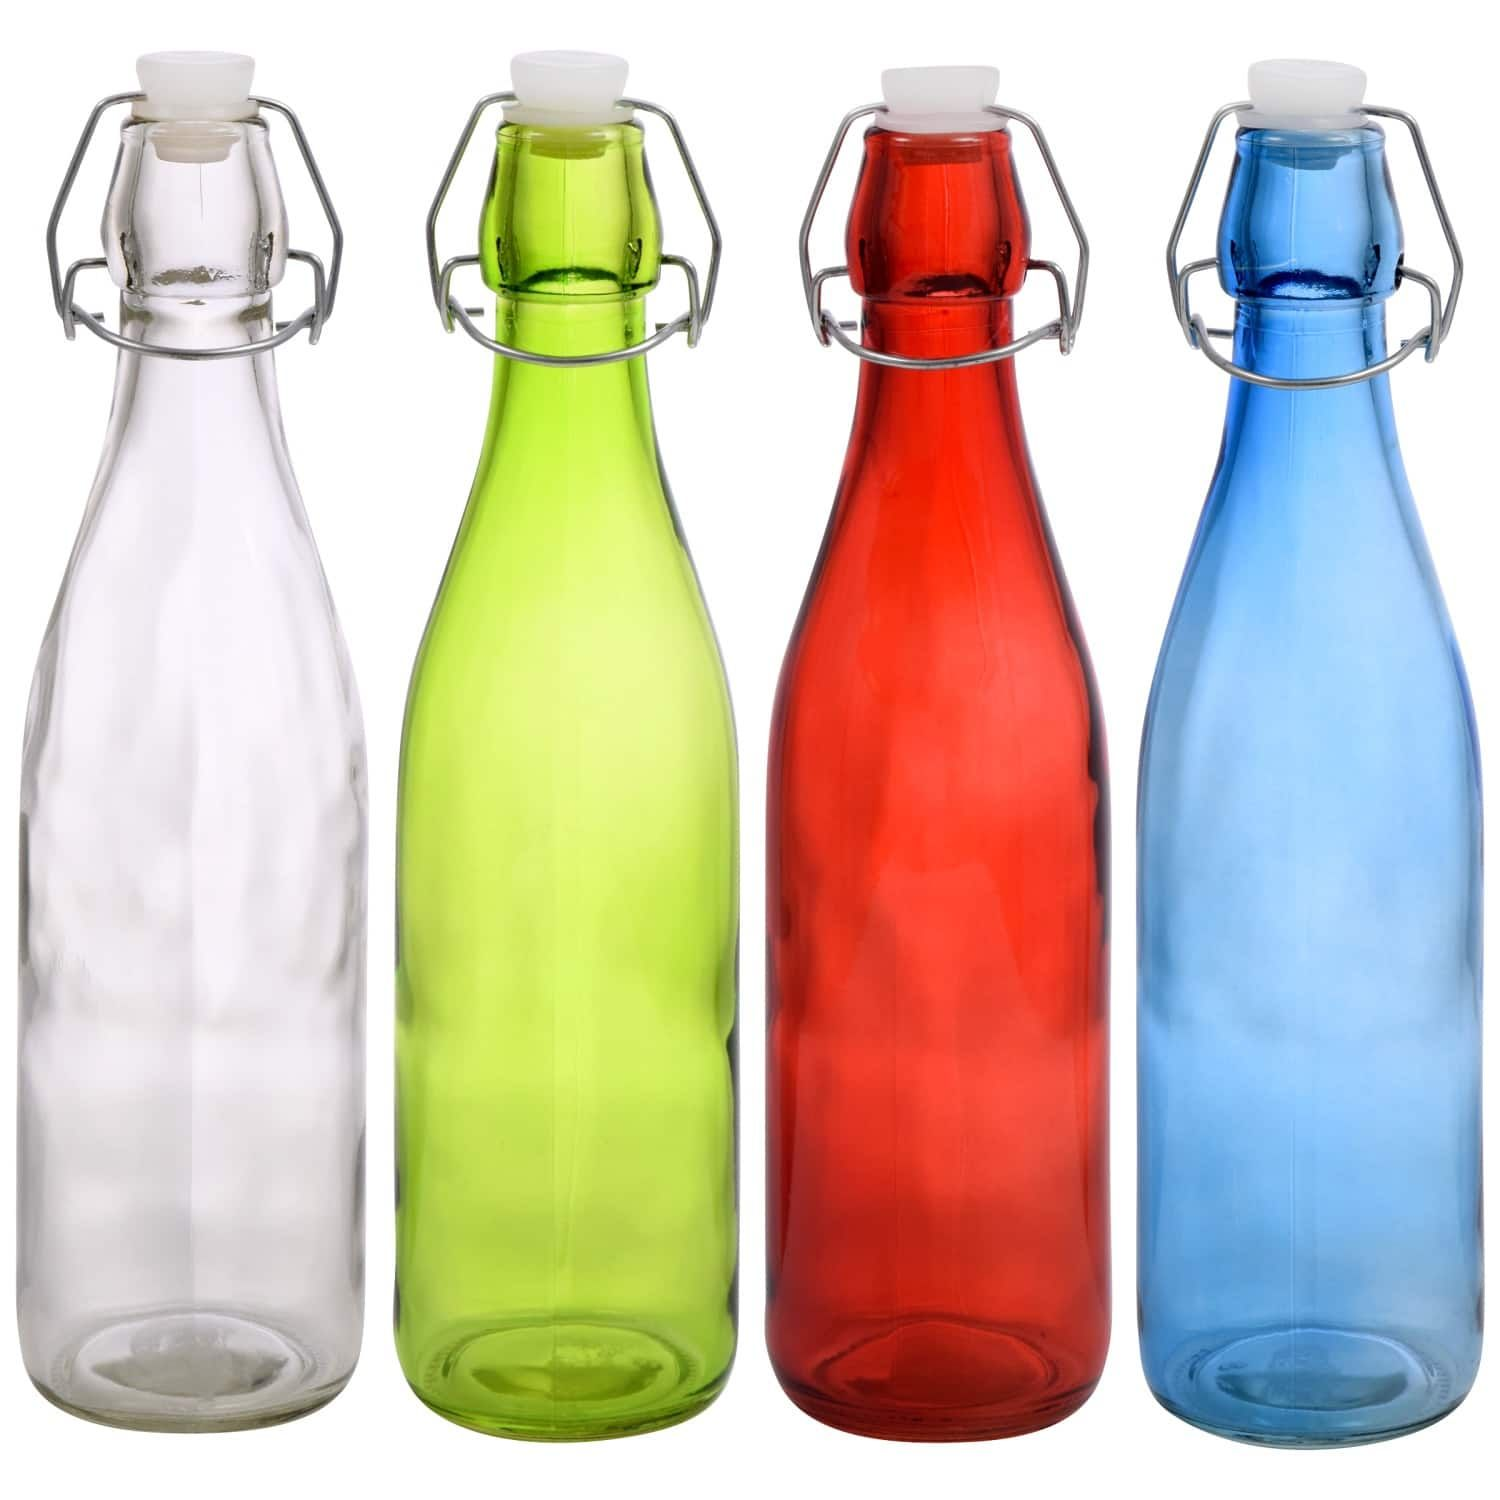 Dollartree Com Bulk Bulk Colorful Glass Bottles With Flip Top Metal Clasps 18 Oz Colored Glass Bottles Glass Bottles Glass Bottle Diy